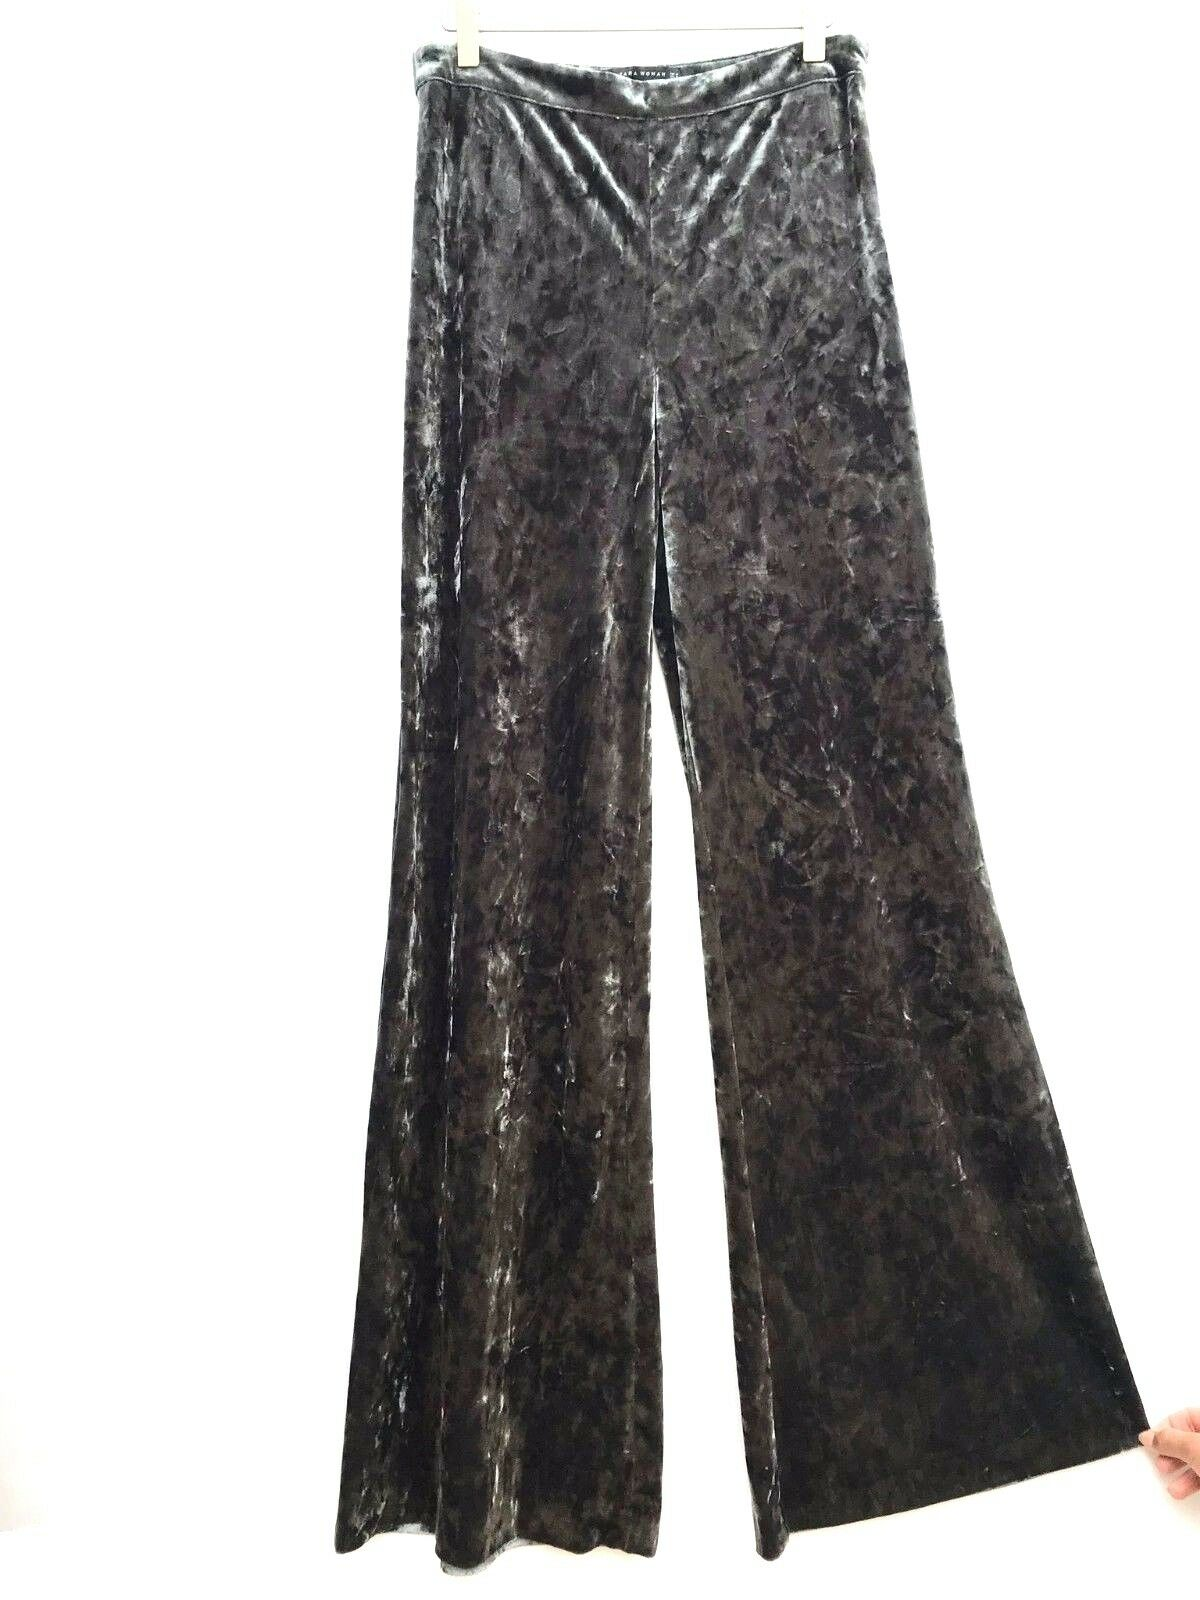 ZARA VELVET FLORAL EMBROIDERED TROUSERS S M L REF 2488 112